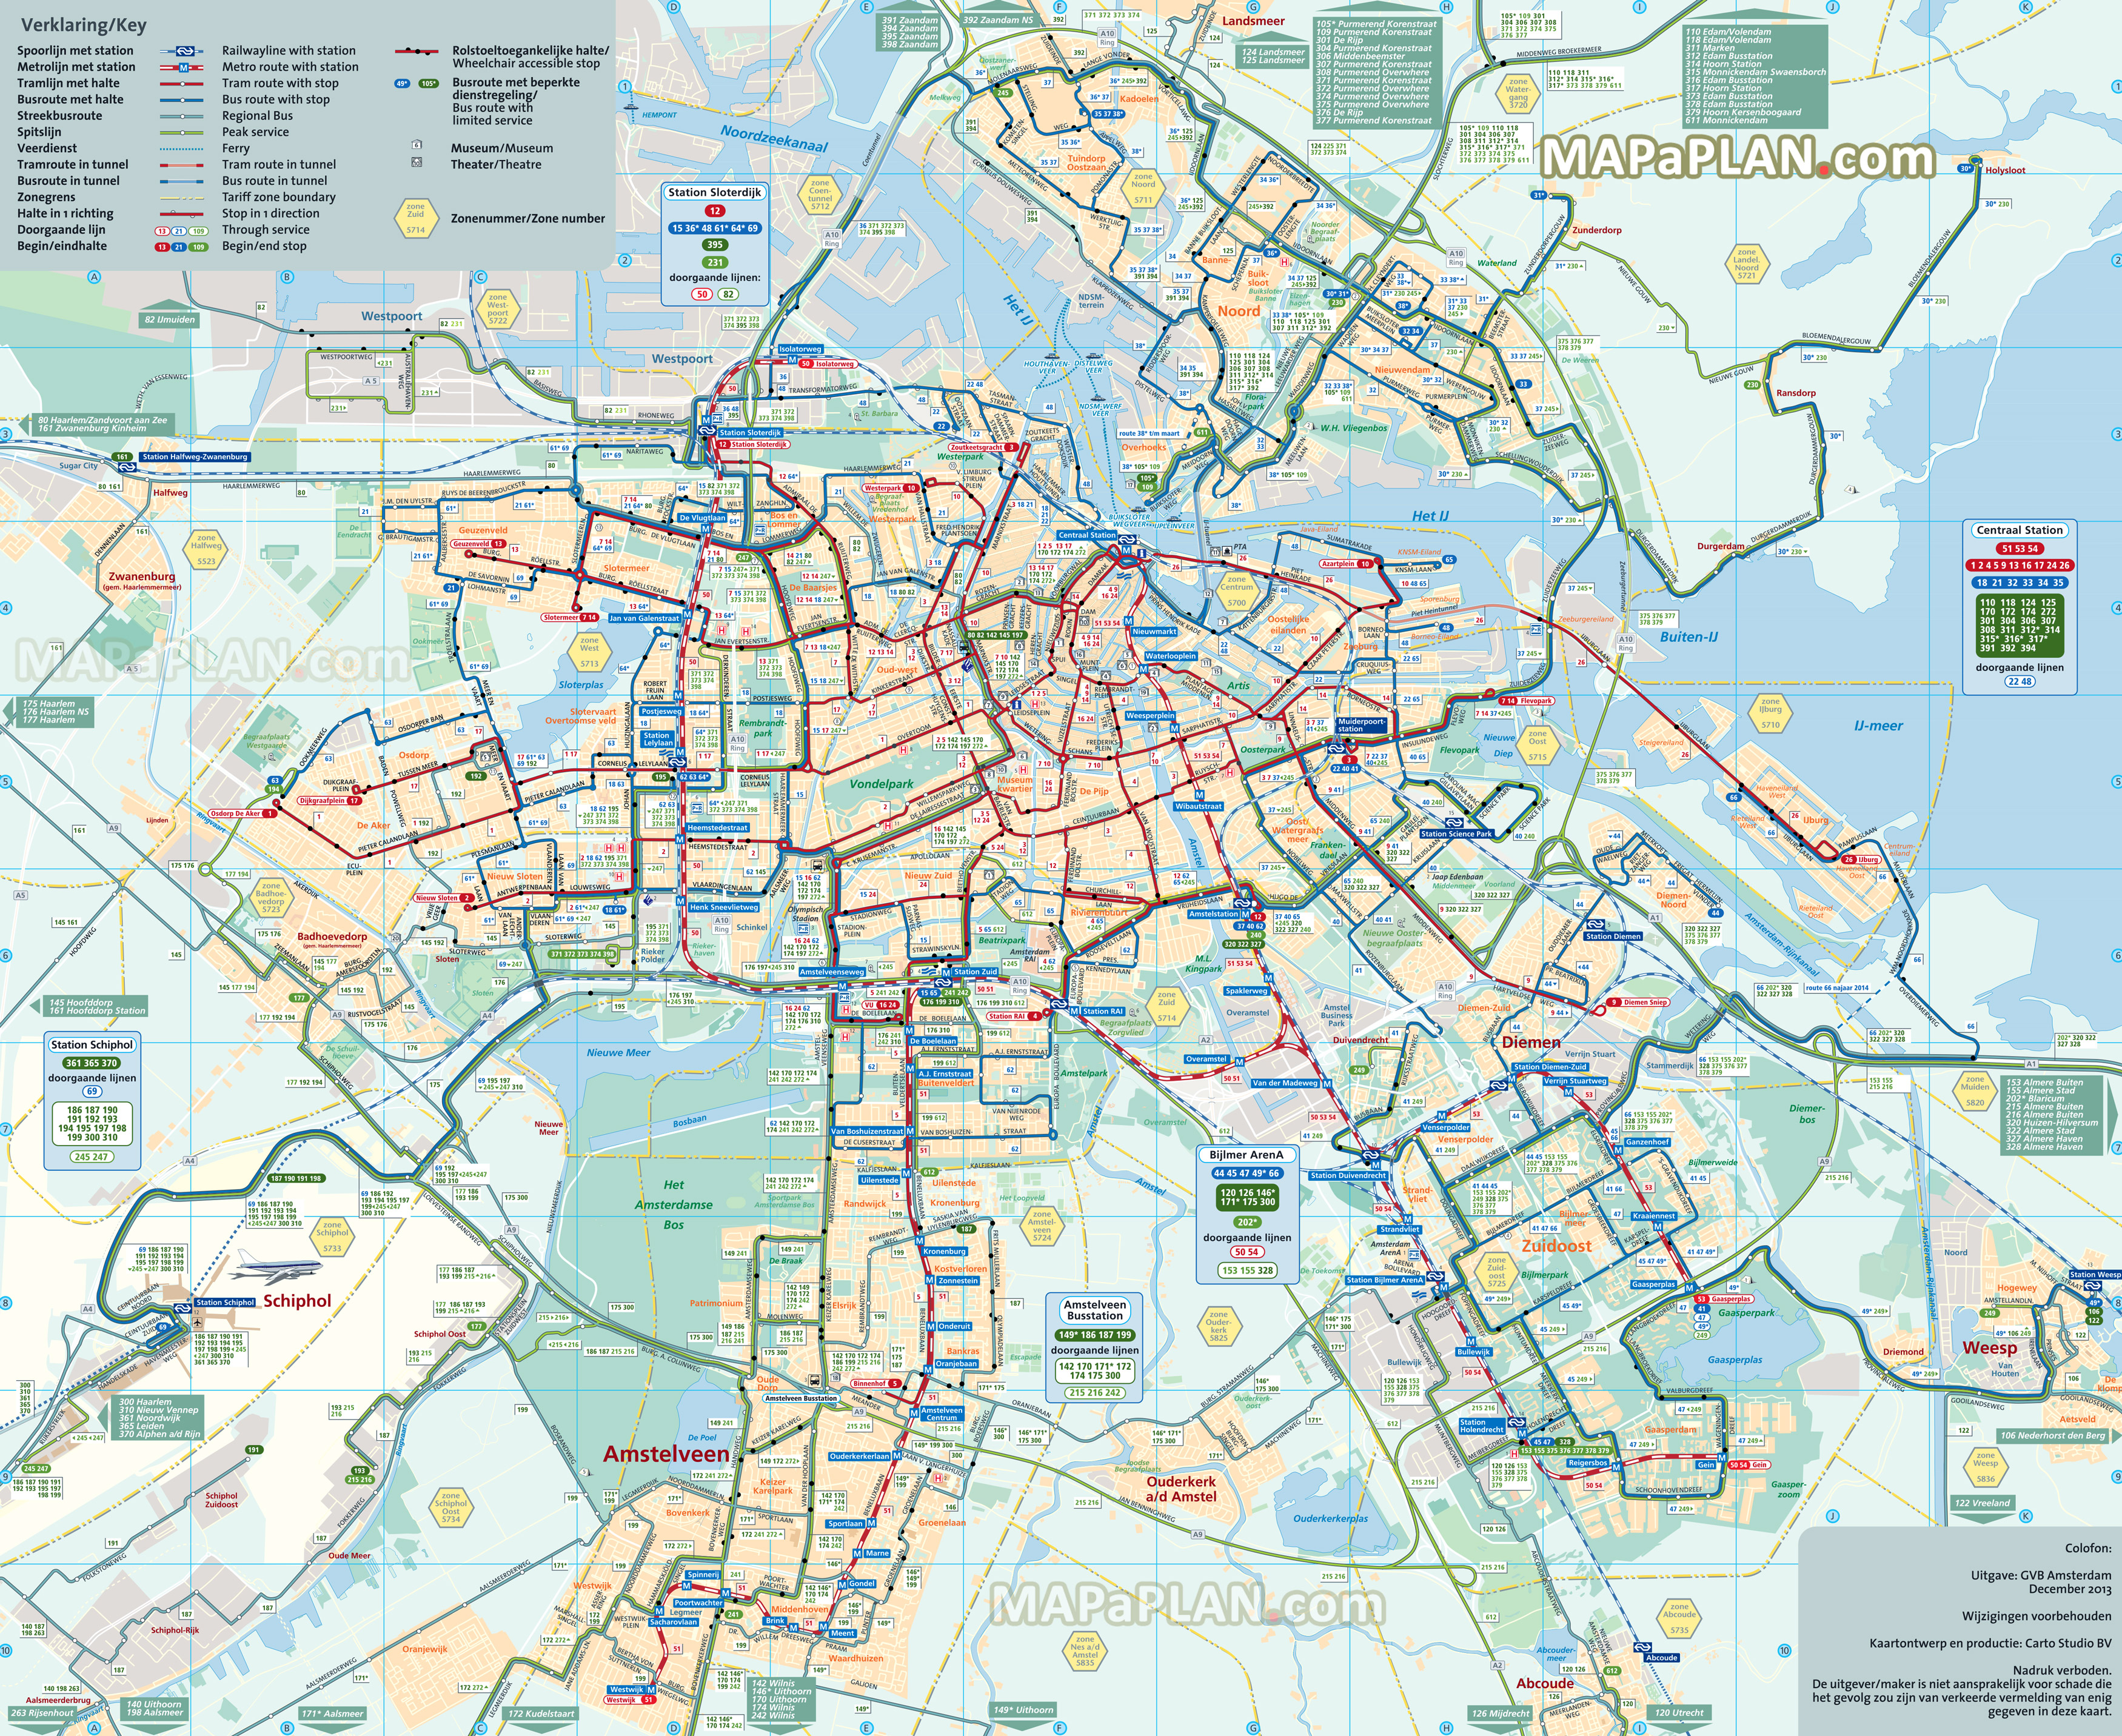 How to get to Amsterdam connections between Amsterdam Airport